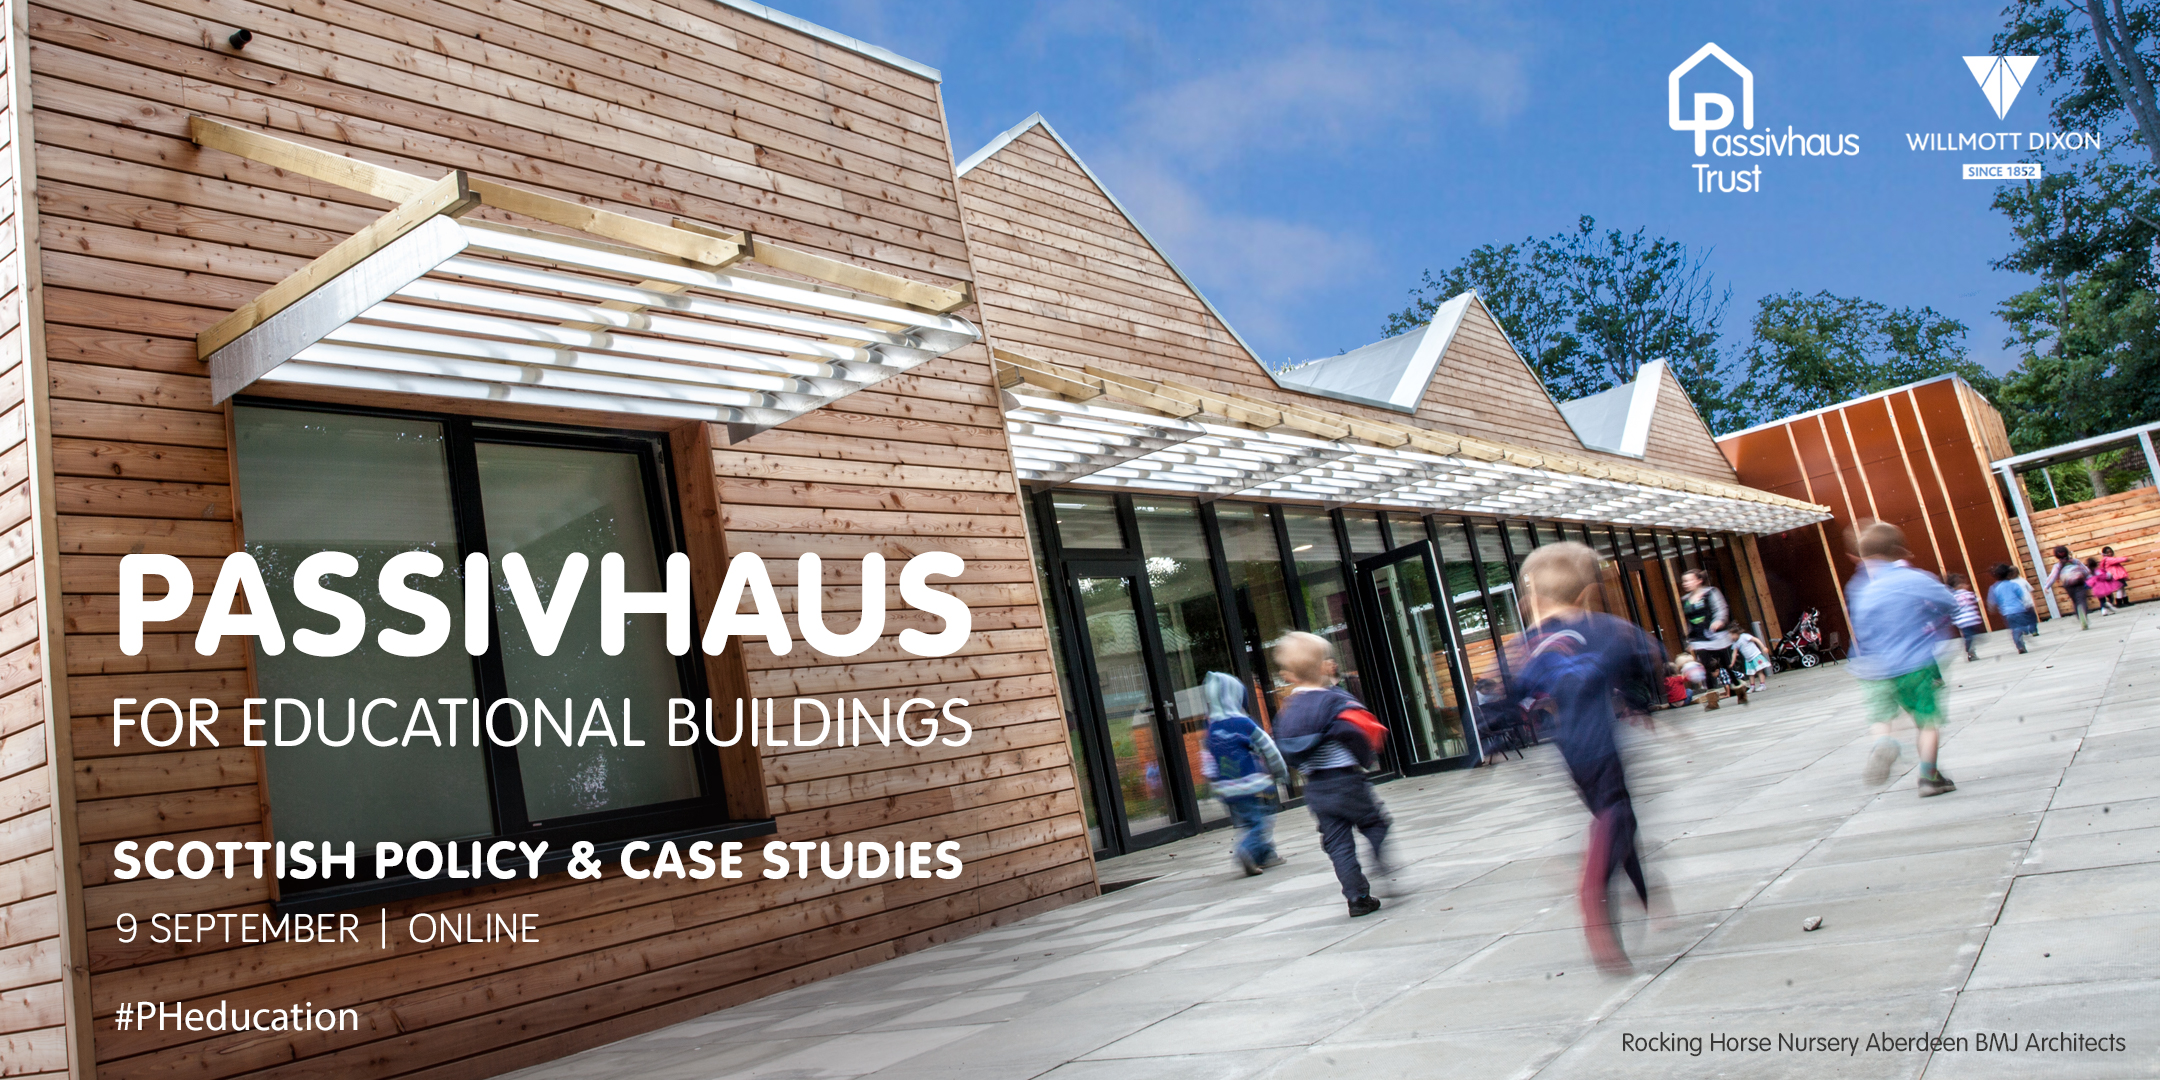 Passivhaus for Educational Buildings: Scottish policy & case studies - 09 Sept 2020